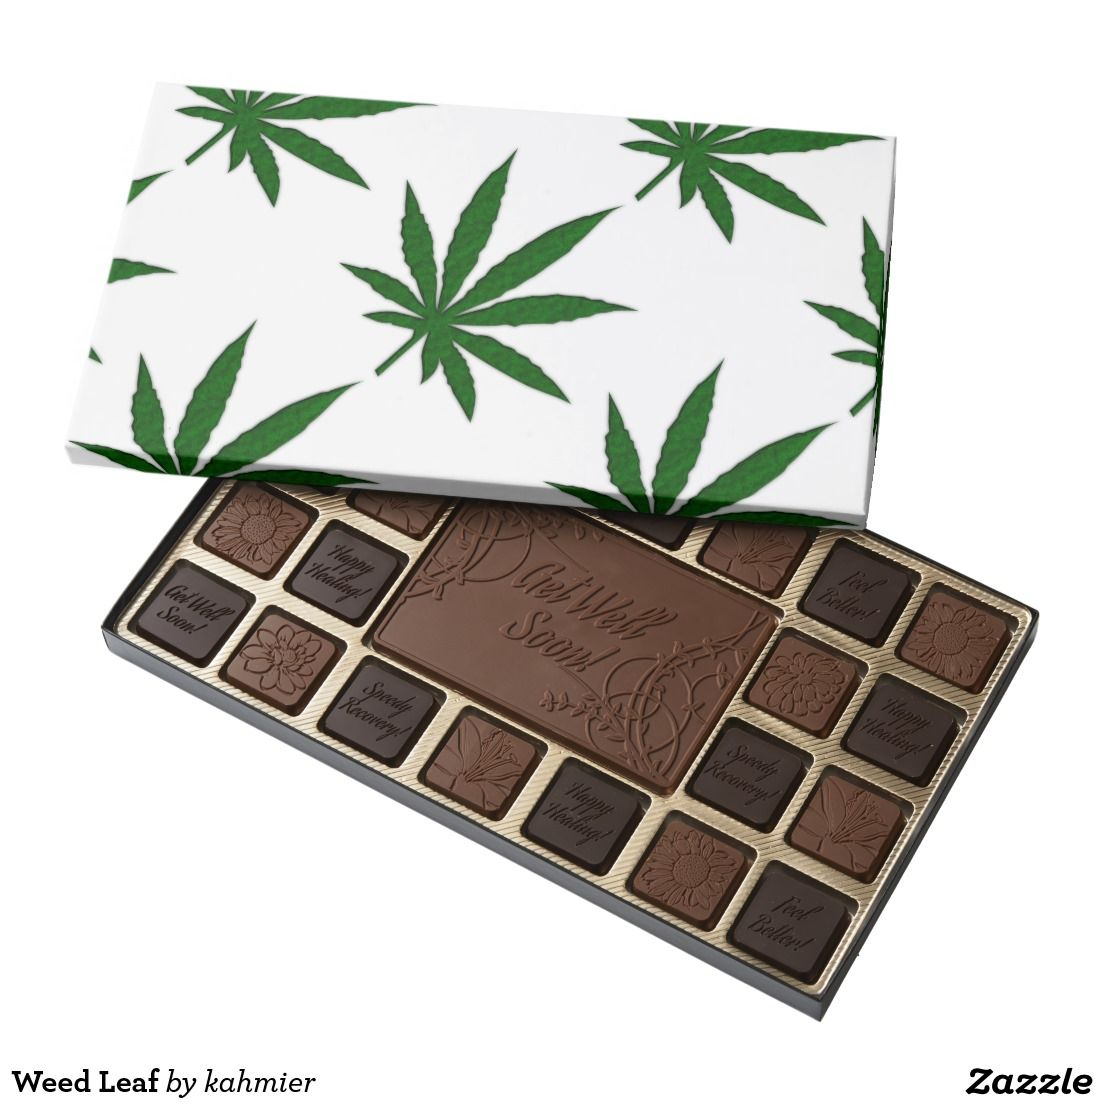 Sold - someone is going to get the munchies taken care of very well. Weed Leaf Assorted Chocolates